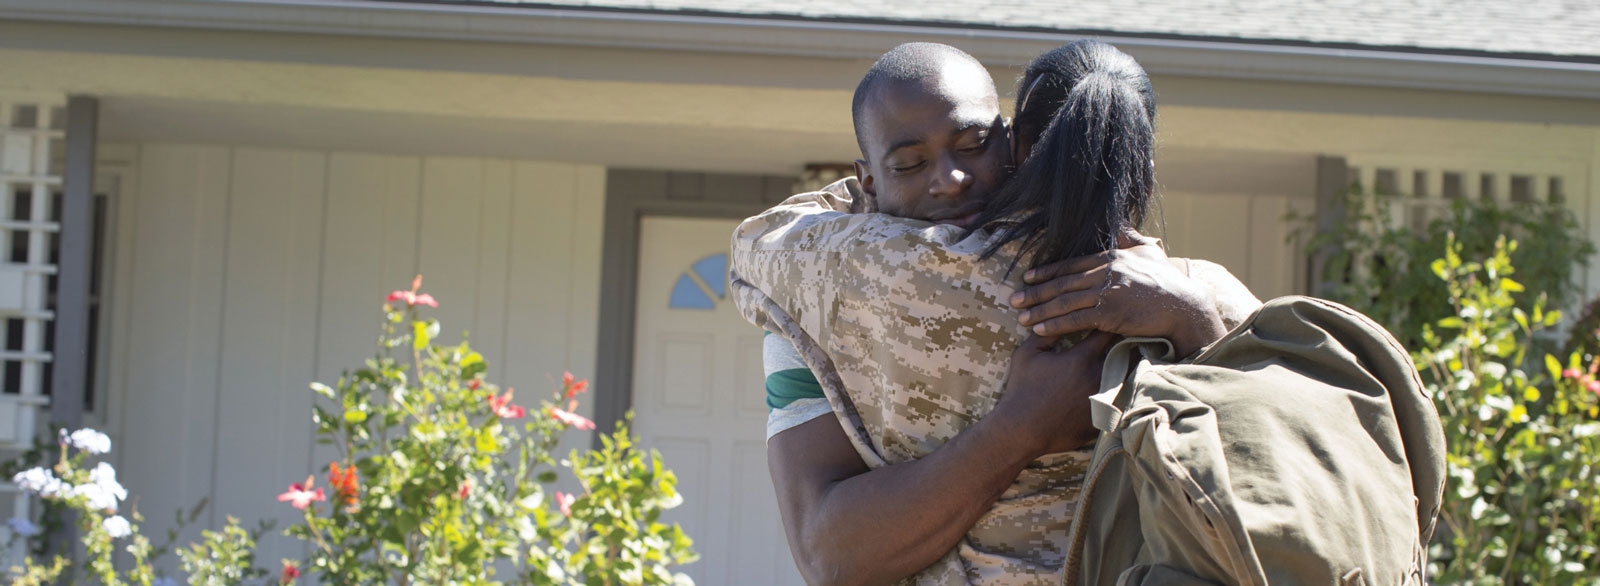 Man hugs woman, who is in military uniform